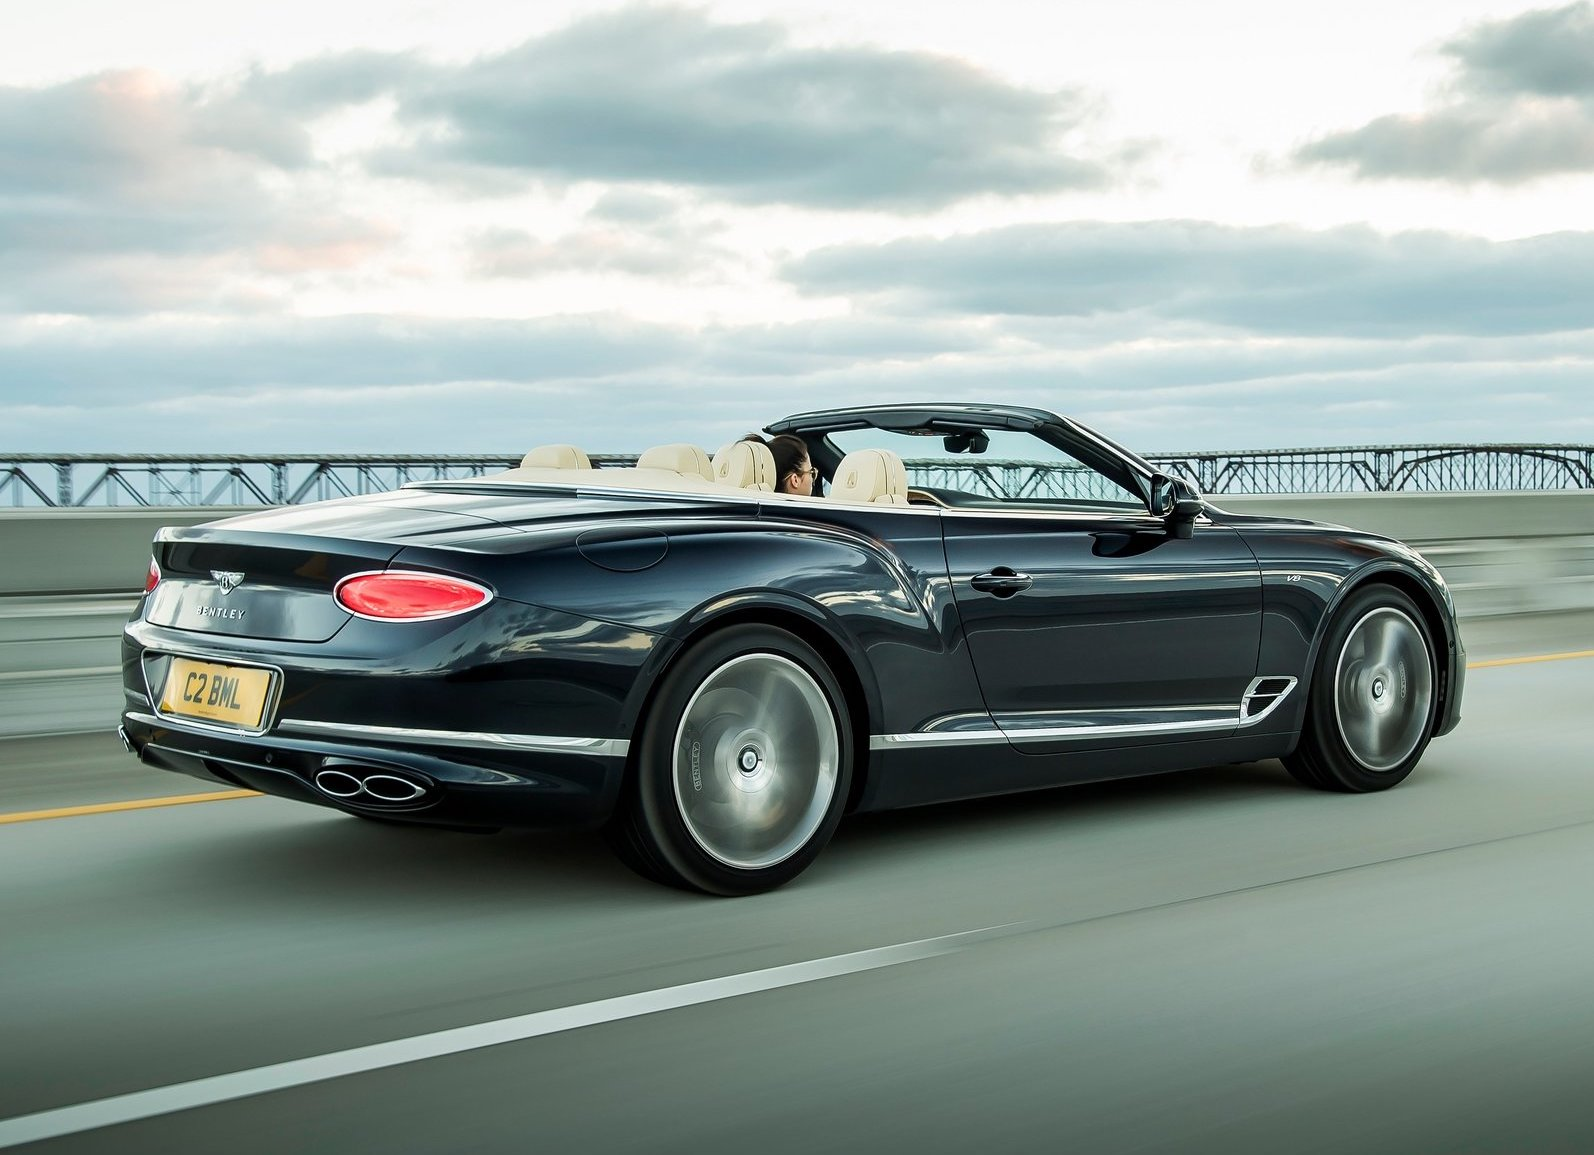 2020 Bentley Continental GT V8 3/4 rear bridge convertible